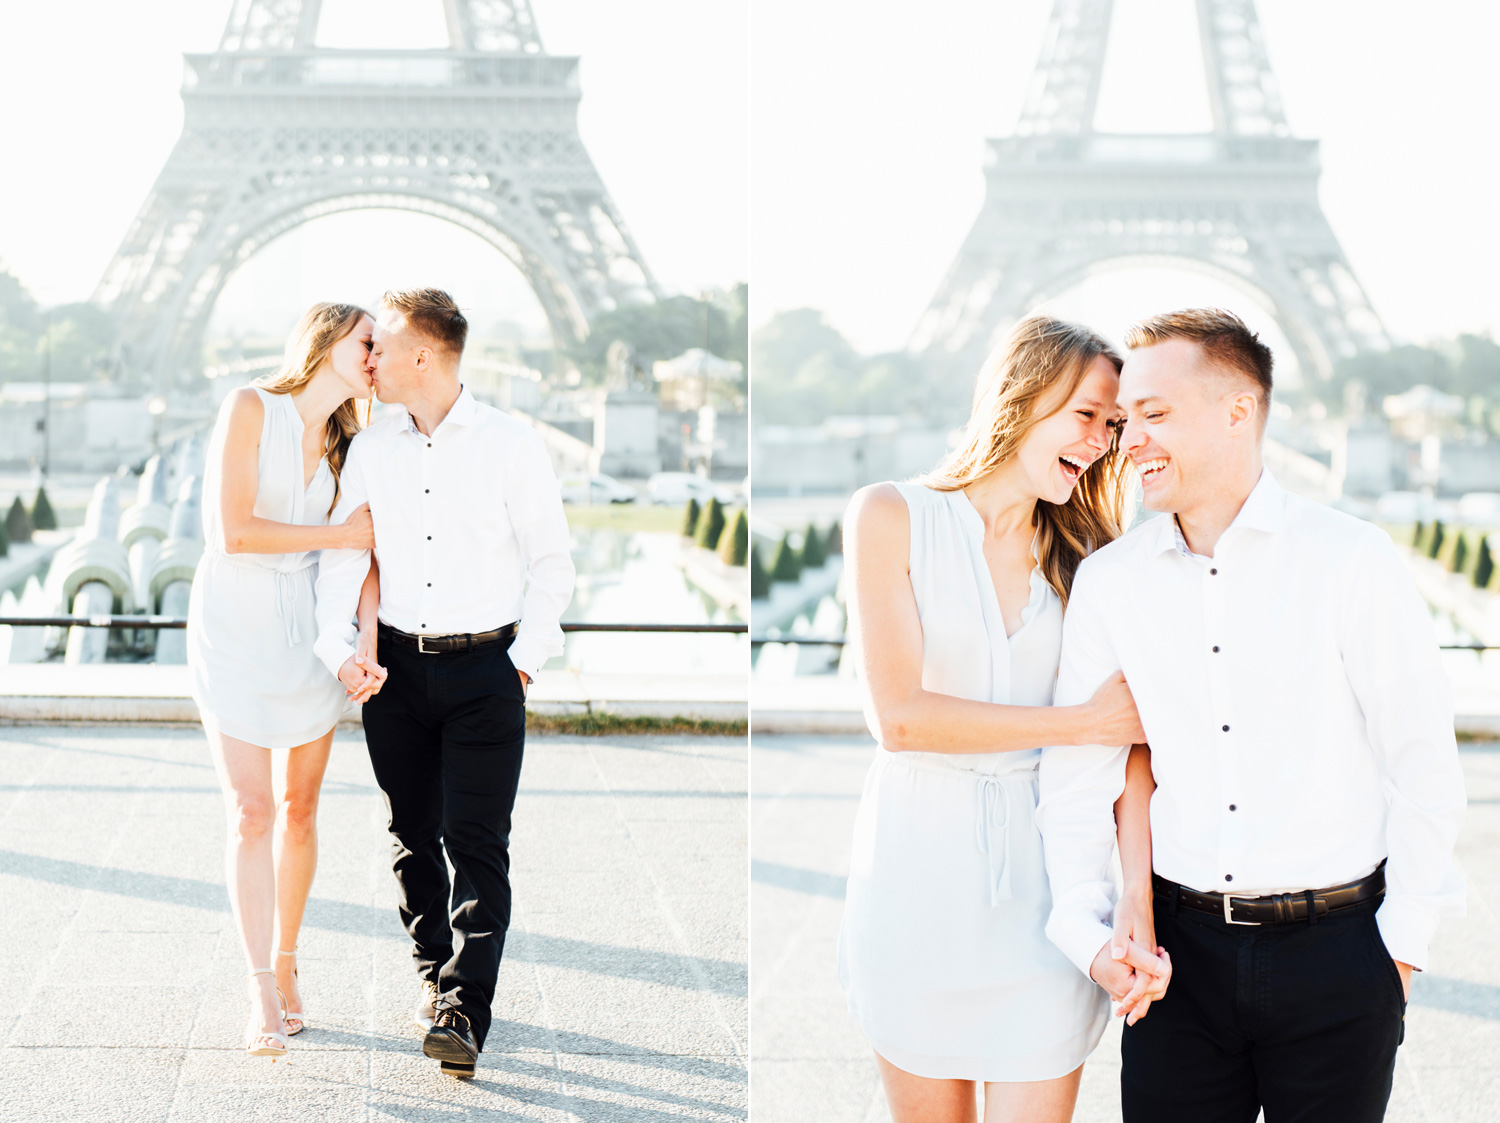 045-katie-mitchell-paris-engagement-photographer.jpg